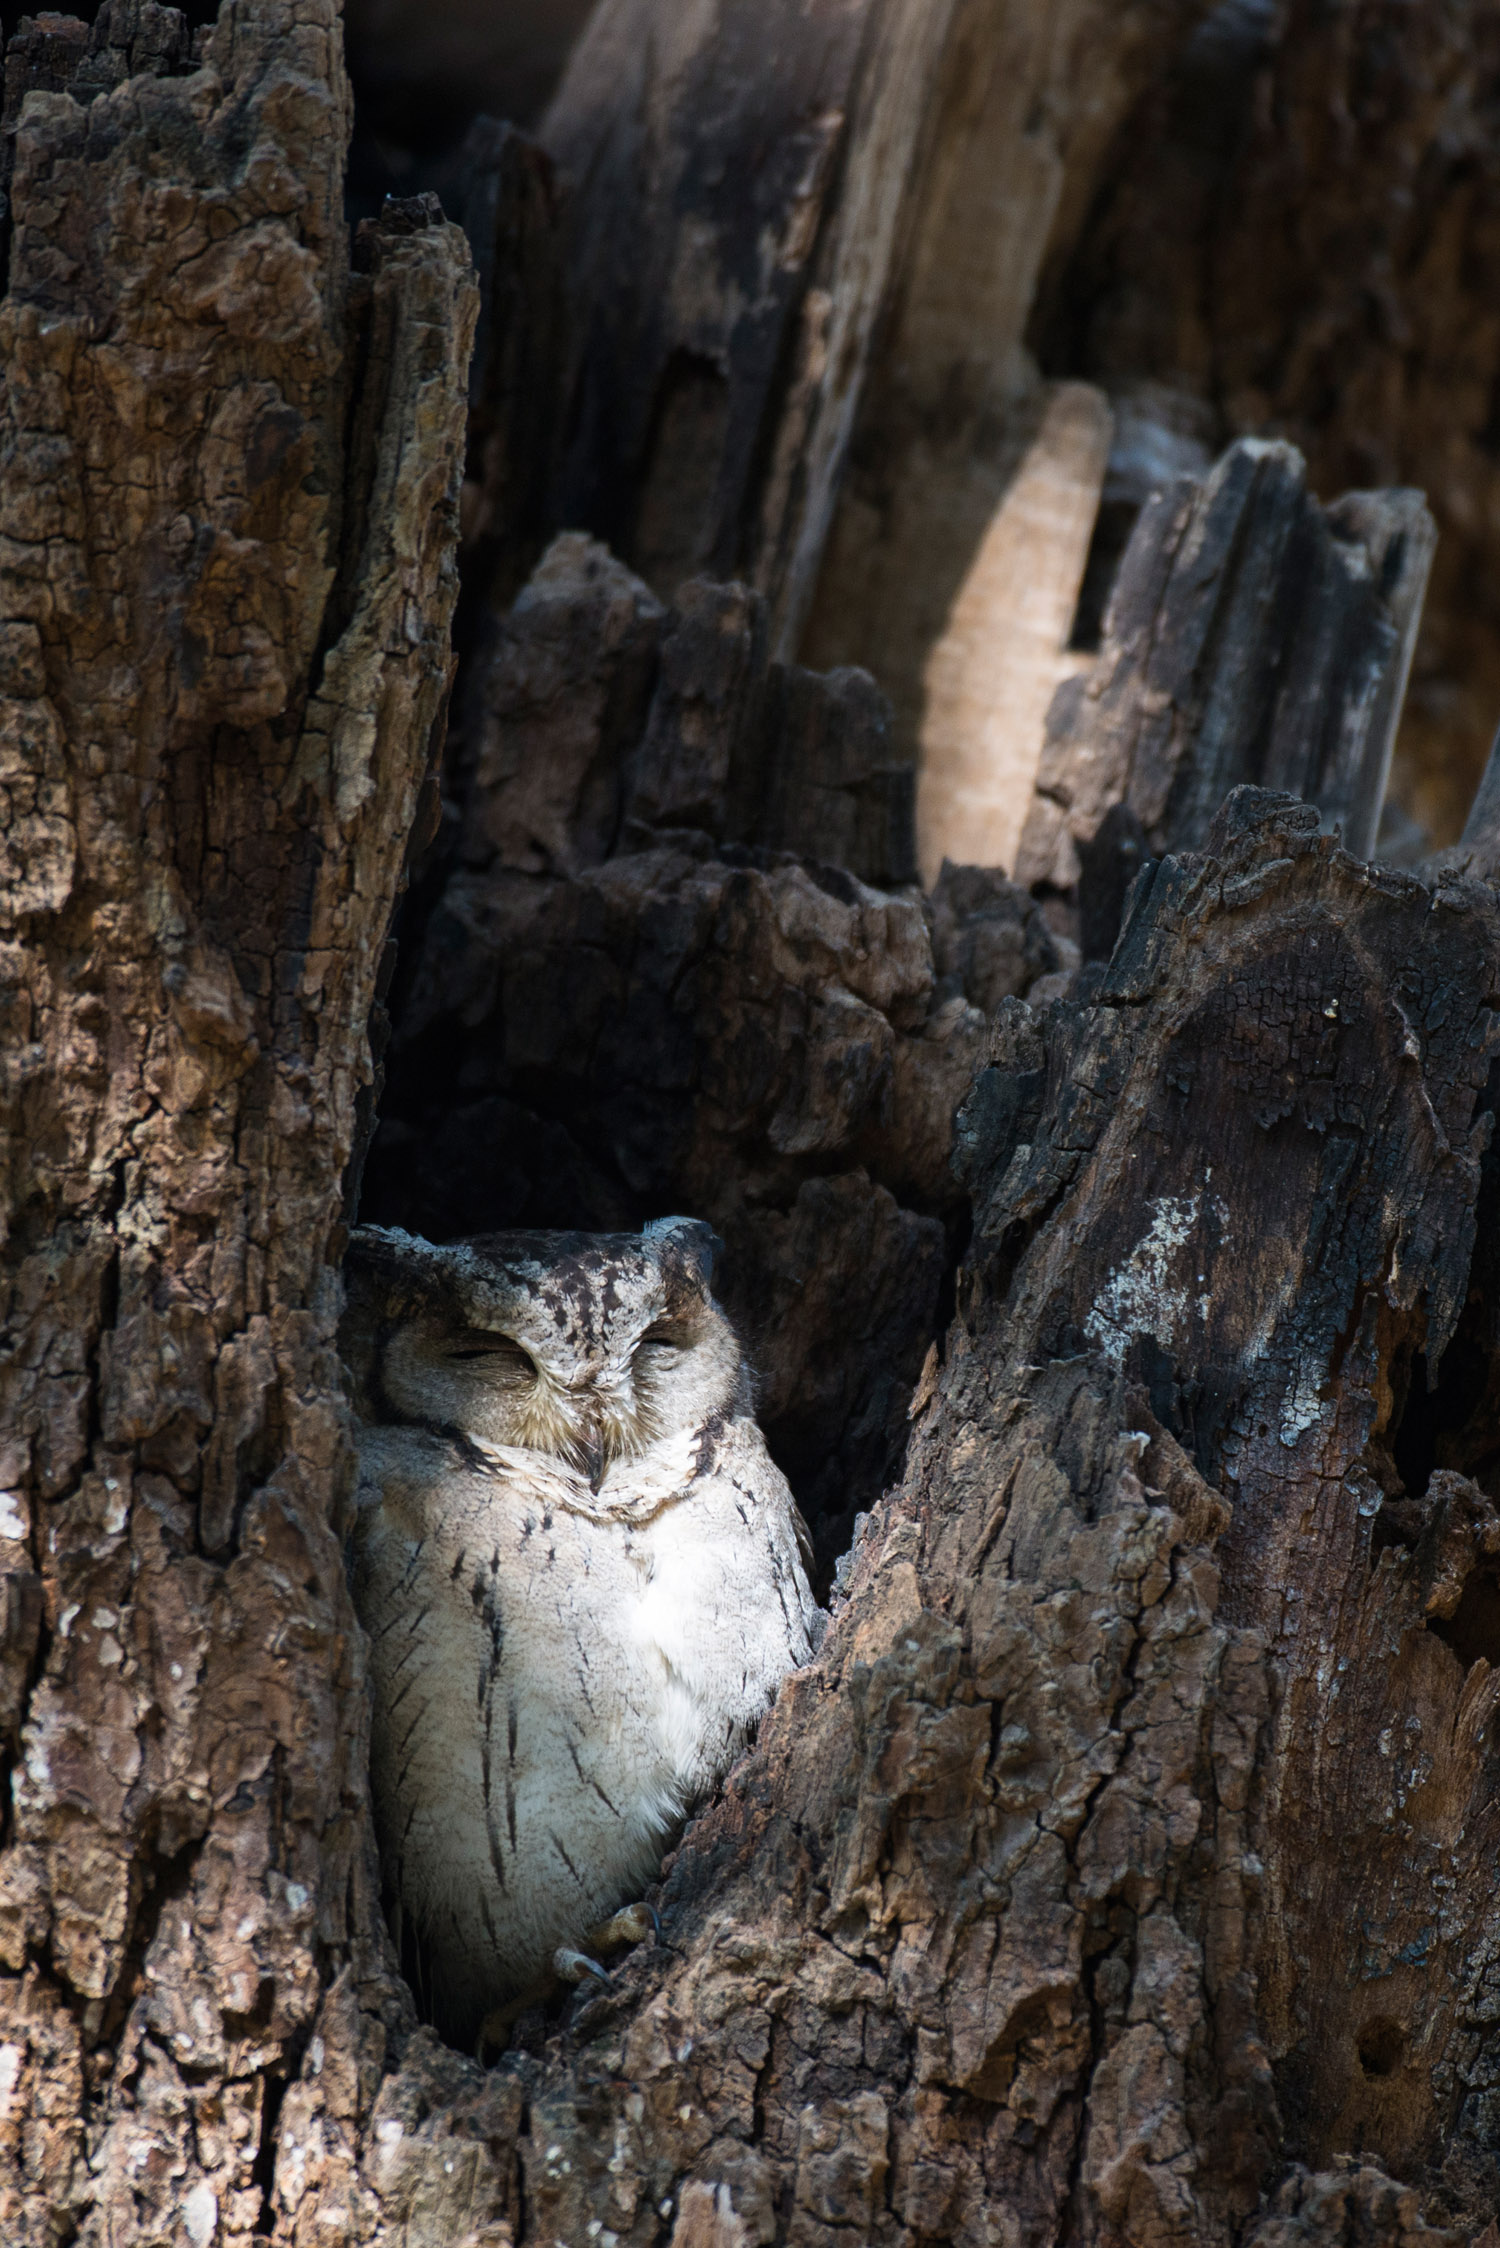 Indian scops owl sleeping in tree hollow, Ranthambhore National Park, Rajasthan, India